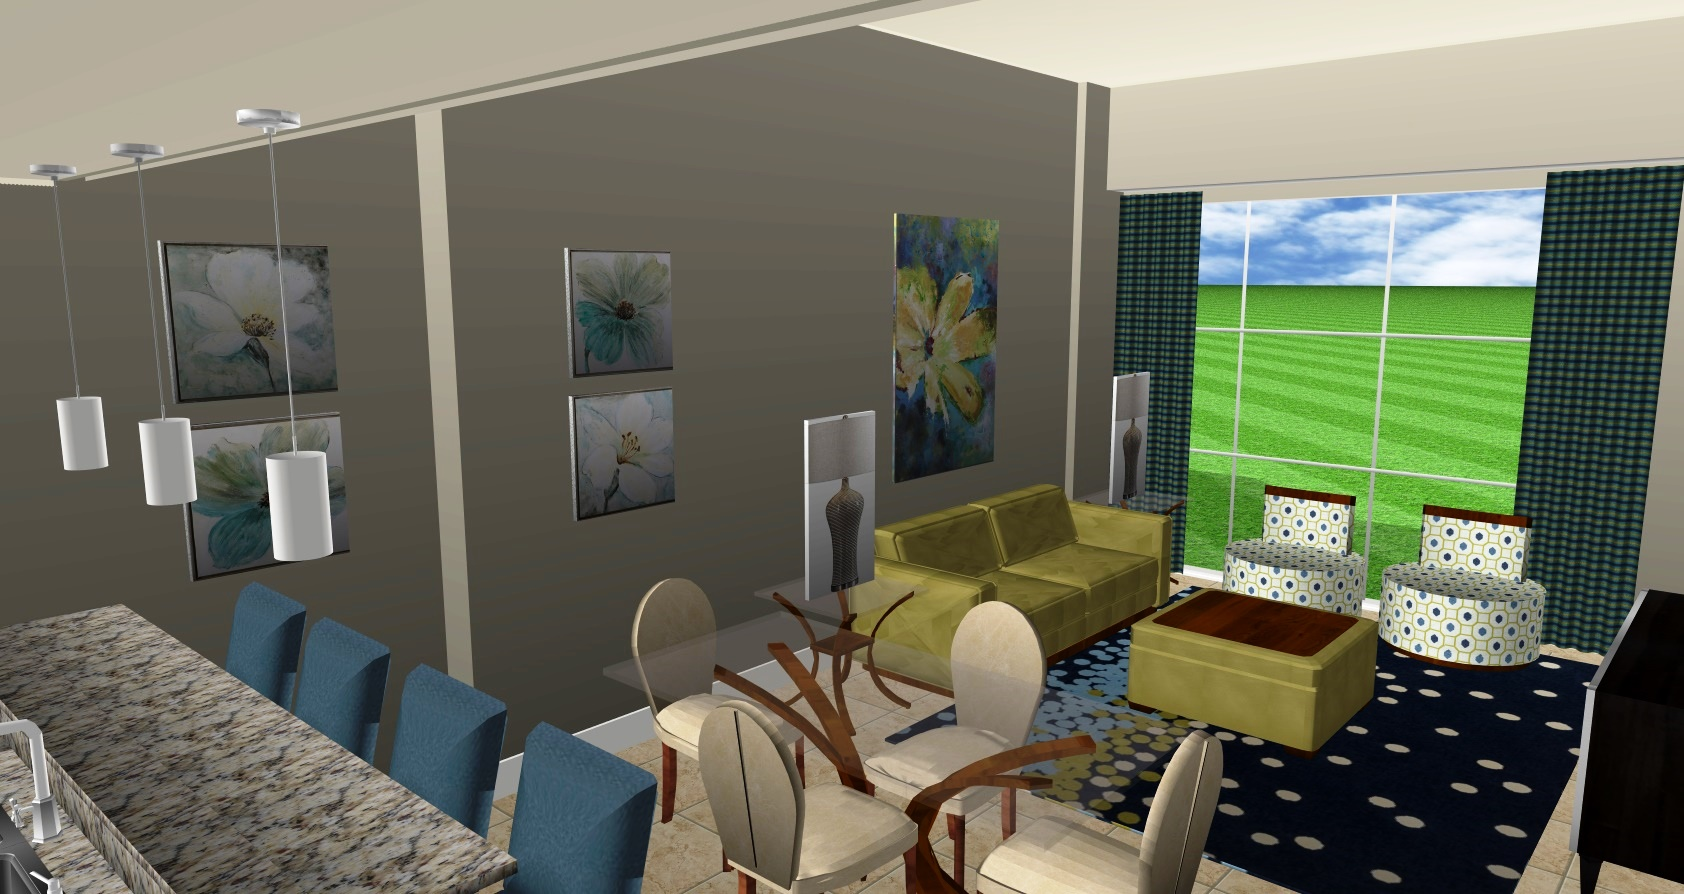 LIVING ROOM: CONCEPT